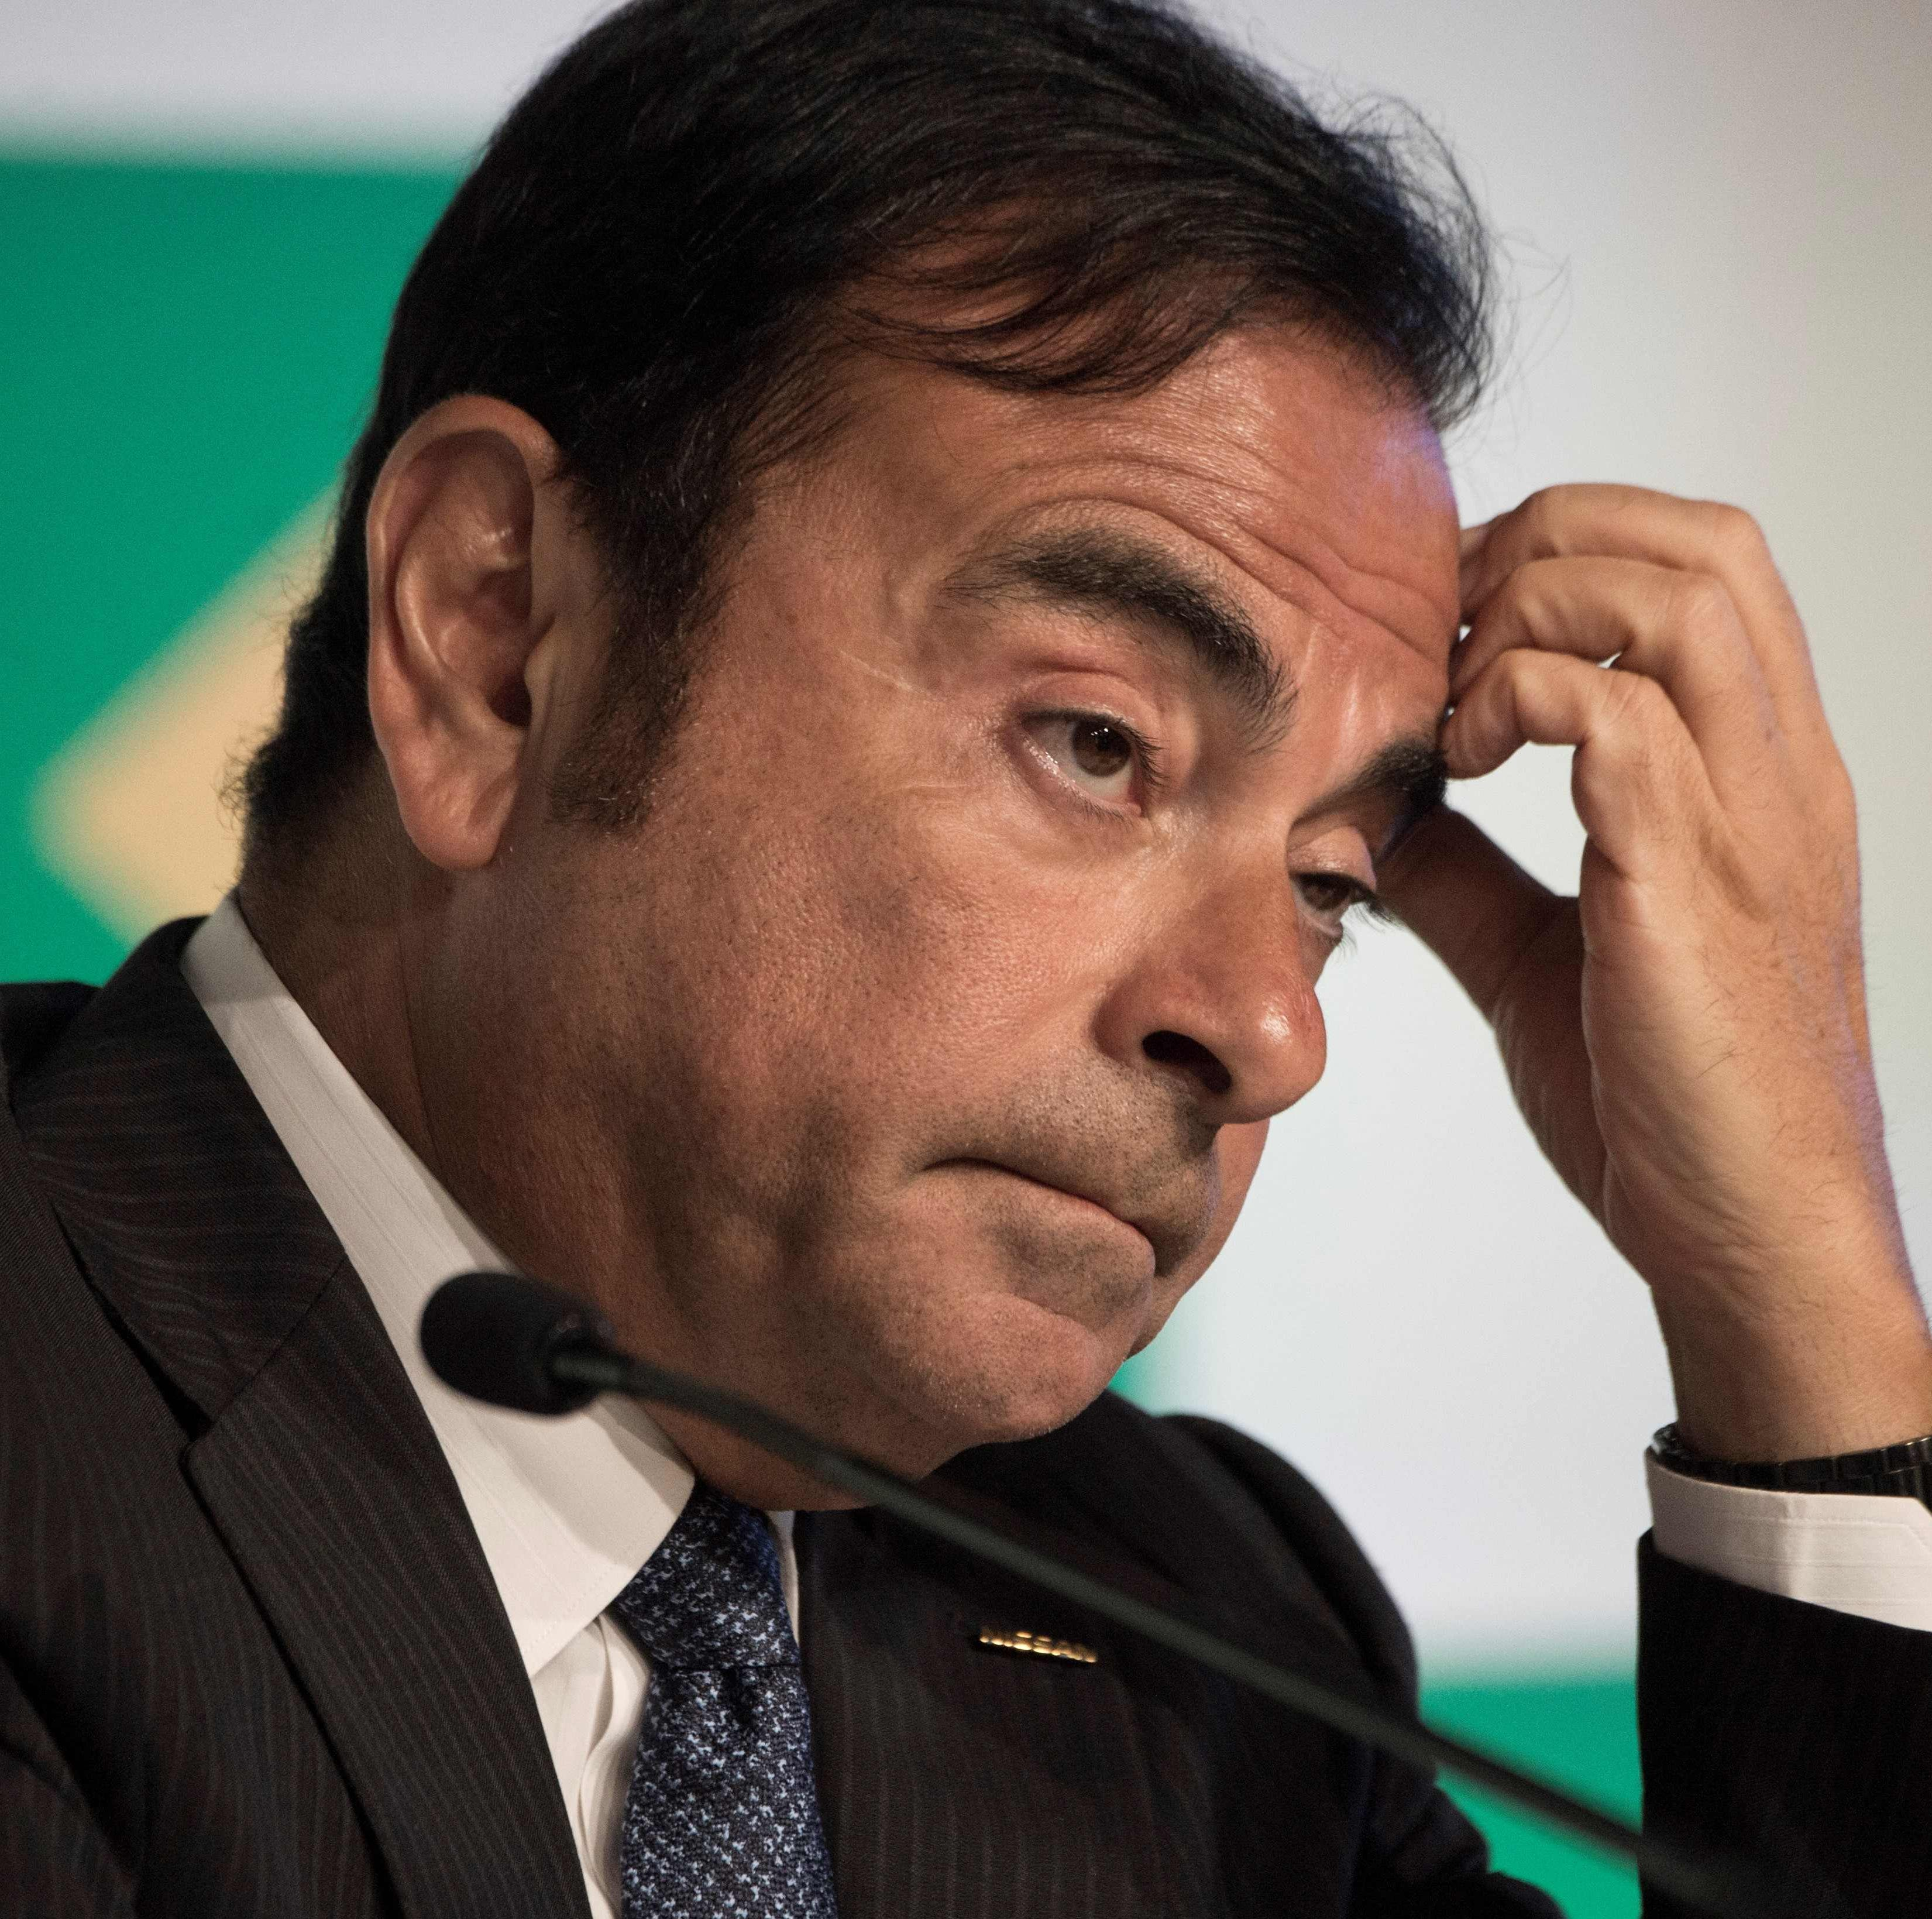 Nissan chairman Carlos Ghosn to be dismissed for 'significant misconduct'